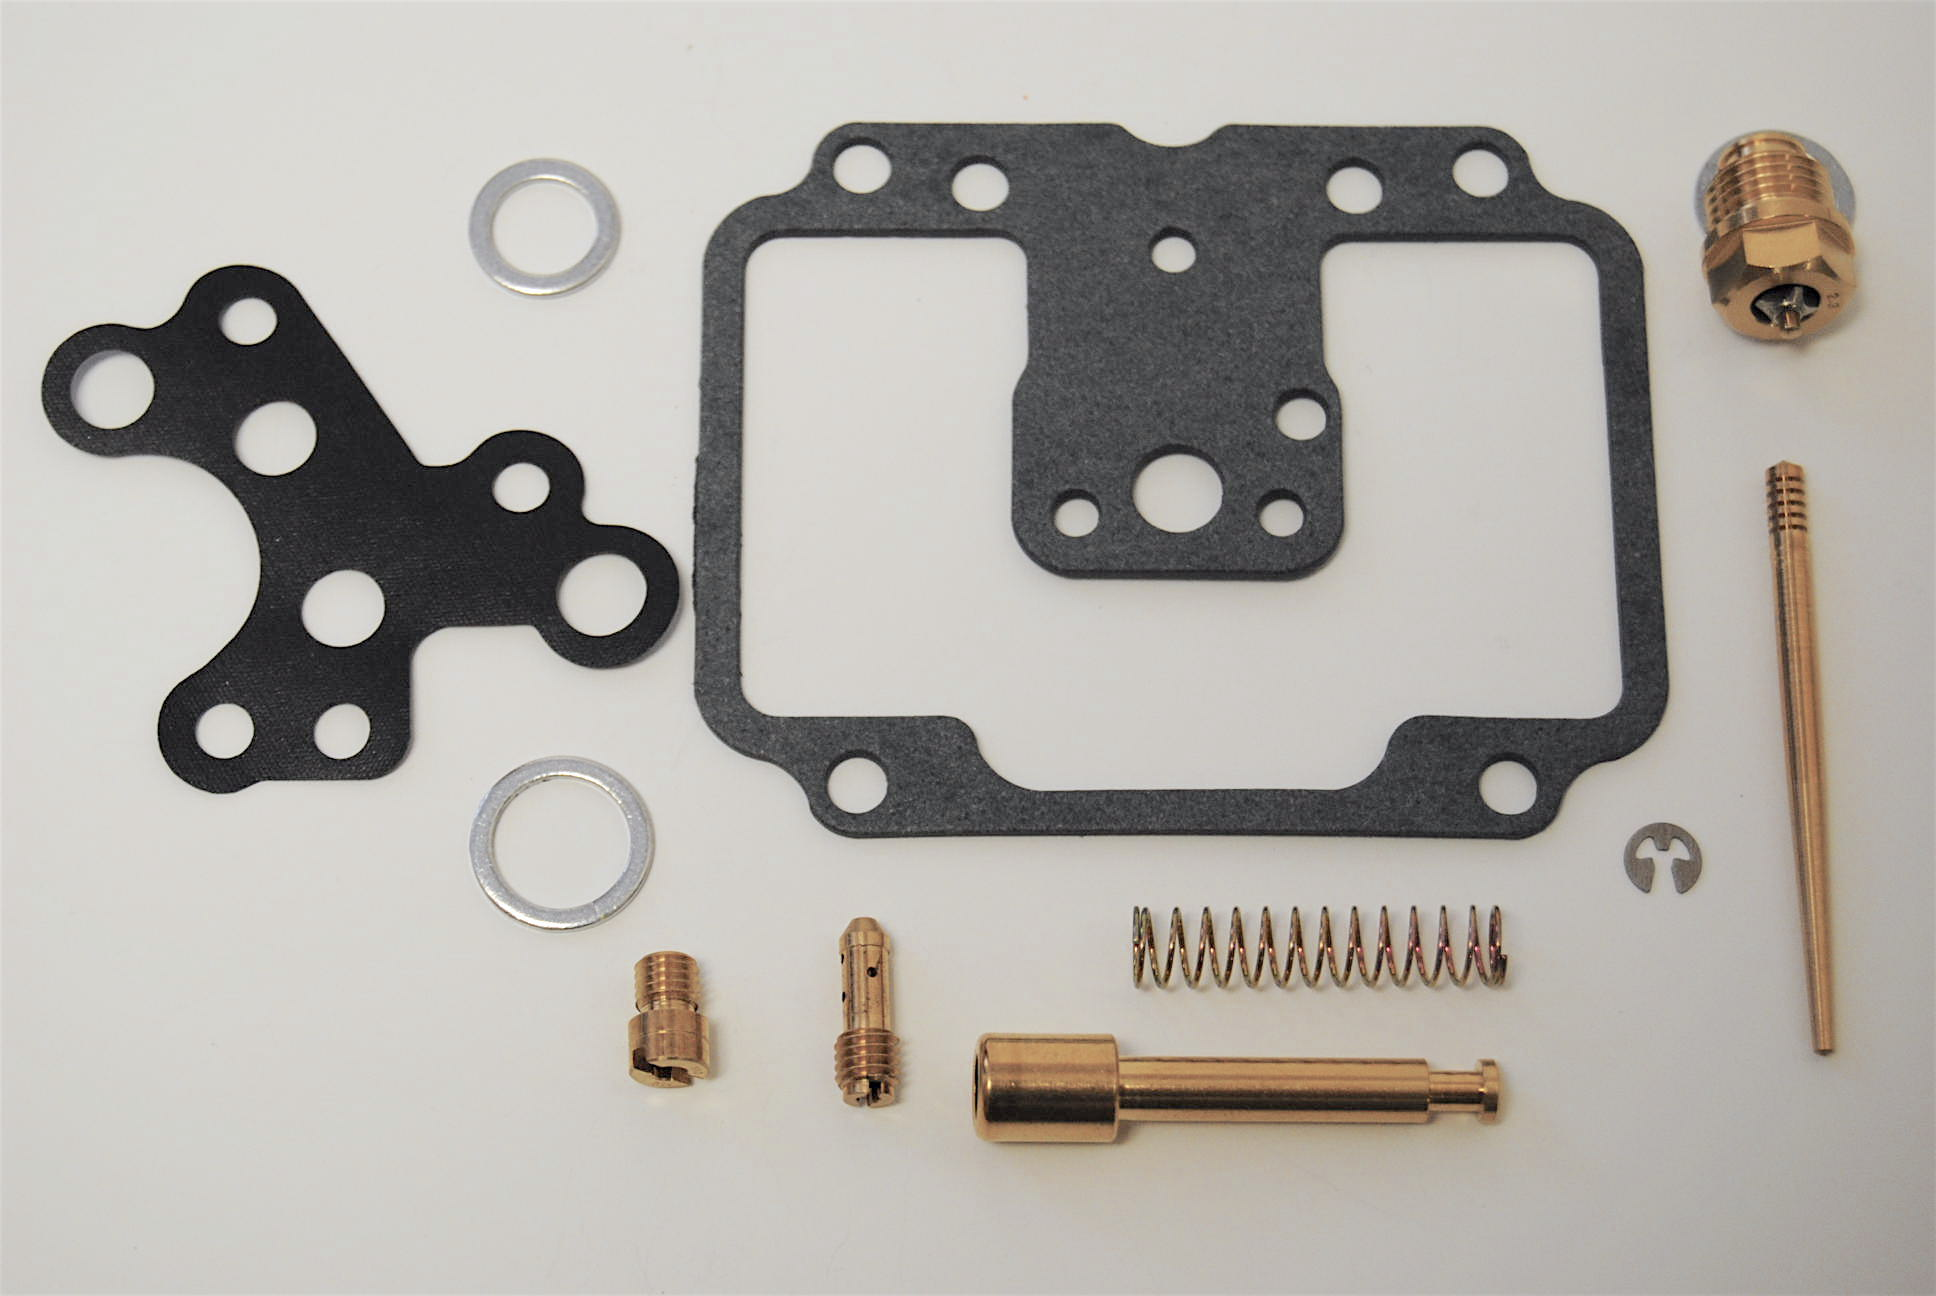 Suzuki GT750 Carburetor Rebuild Kit